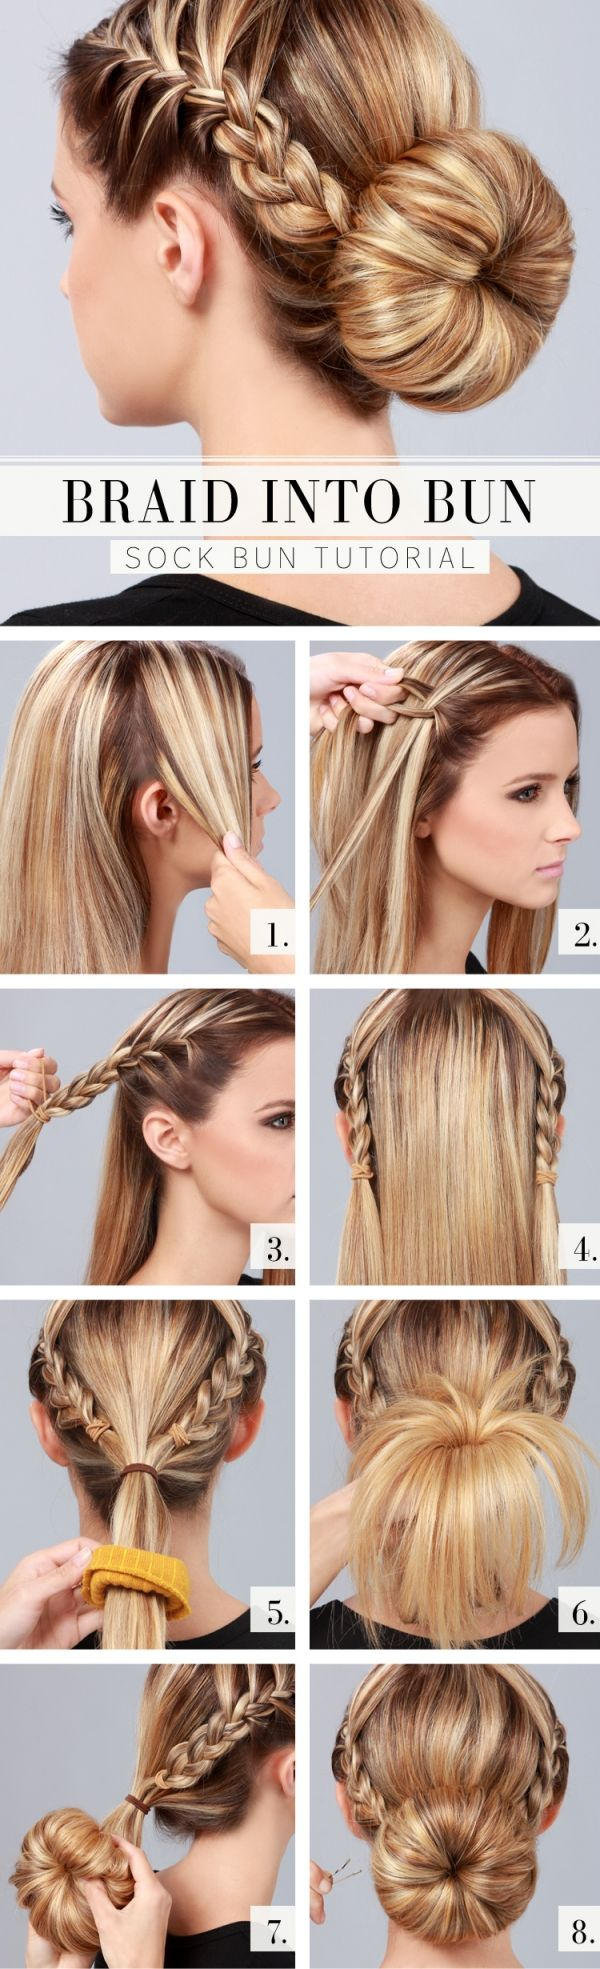 25 Super-Easy Hairstyles Only Girls with Long Hair Will Appreciate ...